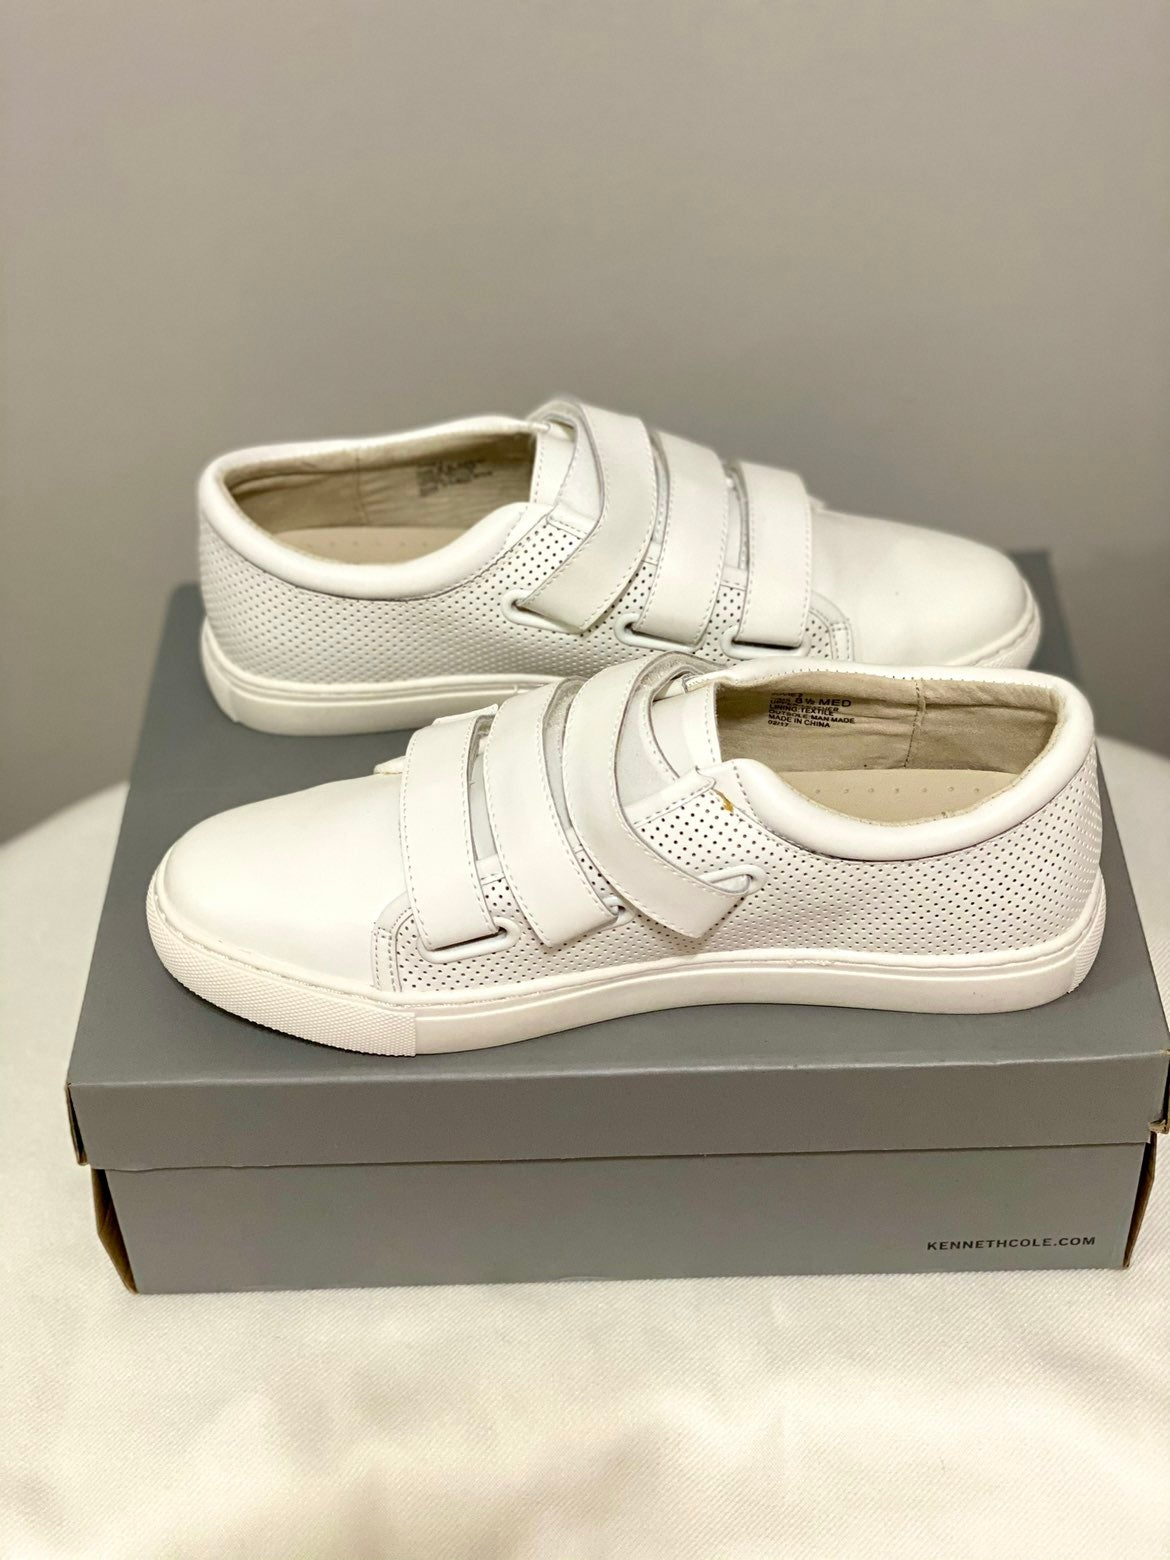 Kenneth Cole Reaction white sneakers